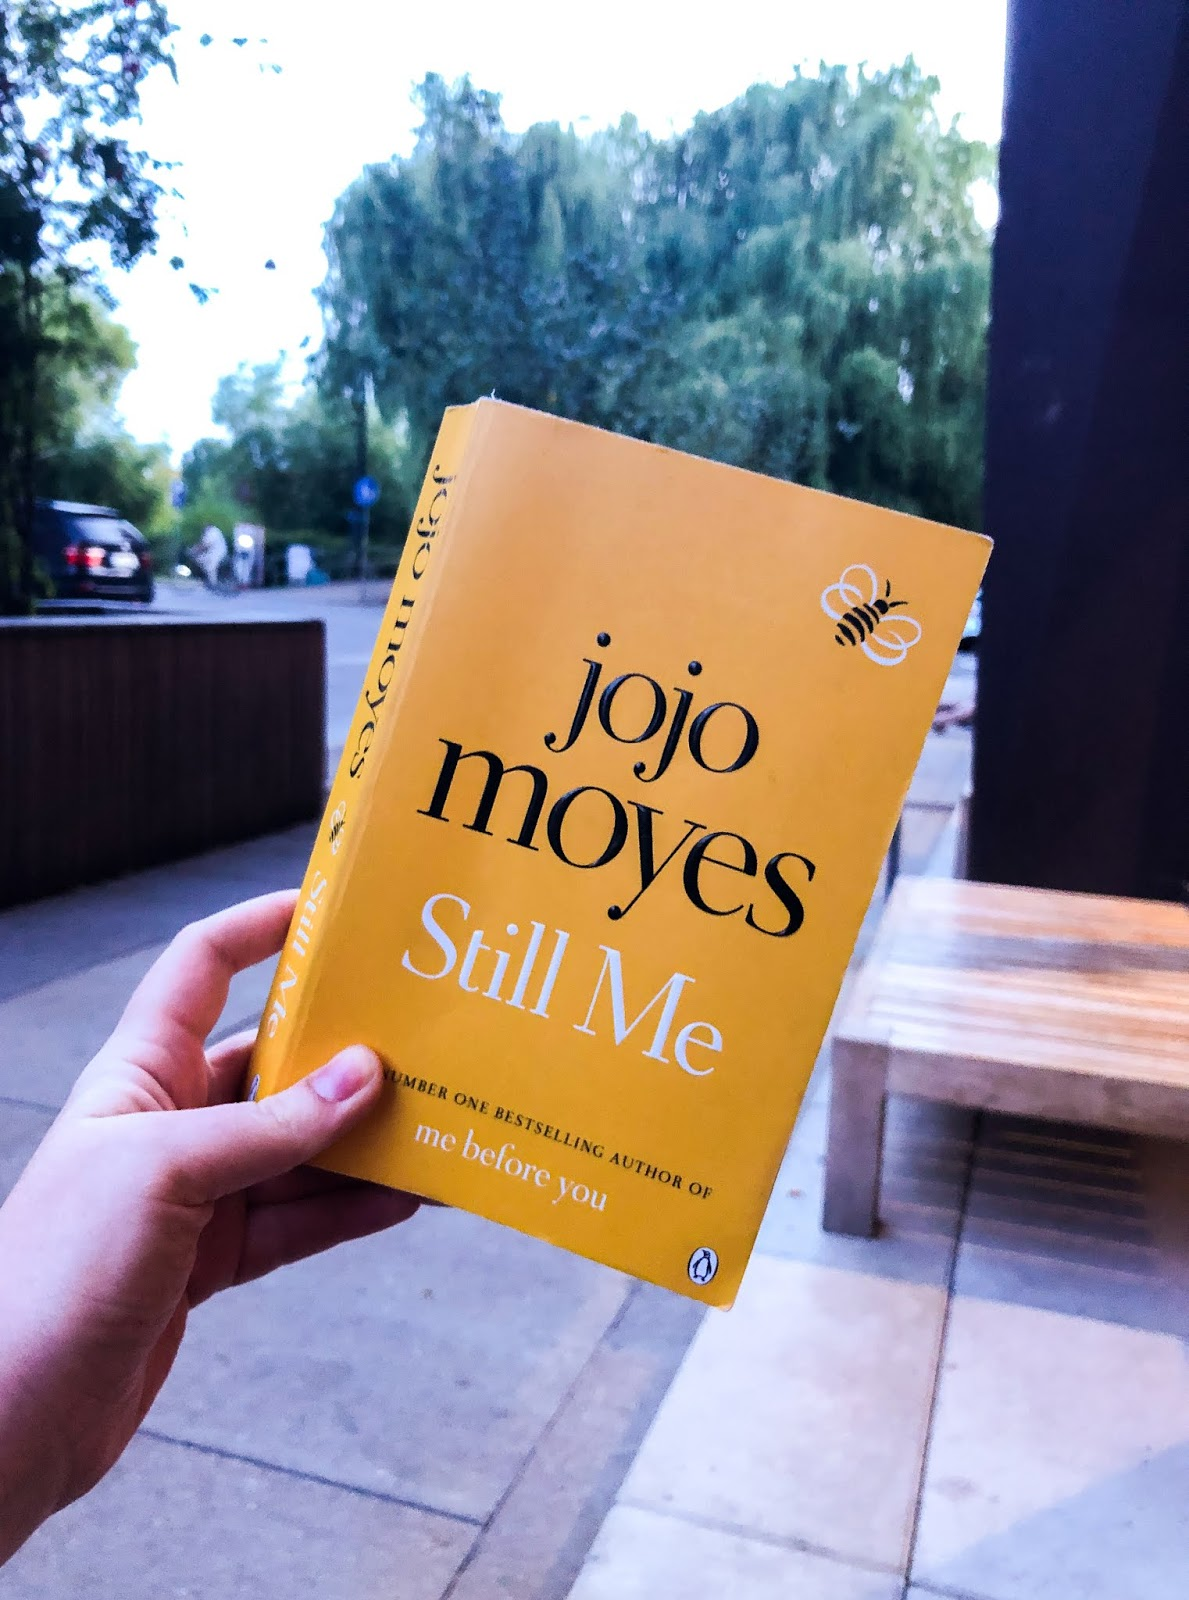 hand holding up jojo moyes' yellow-covered book titled 'still me'